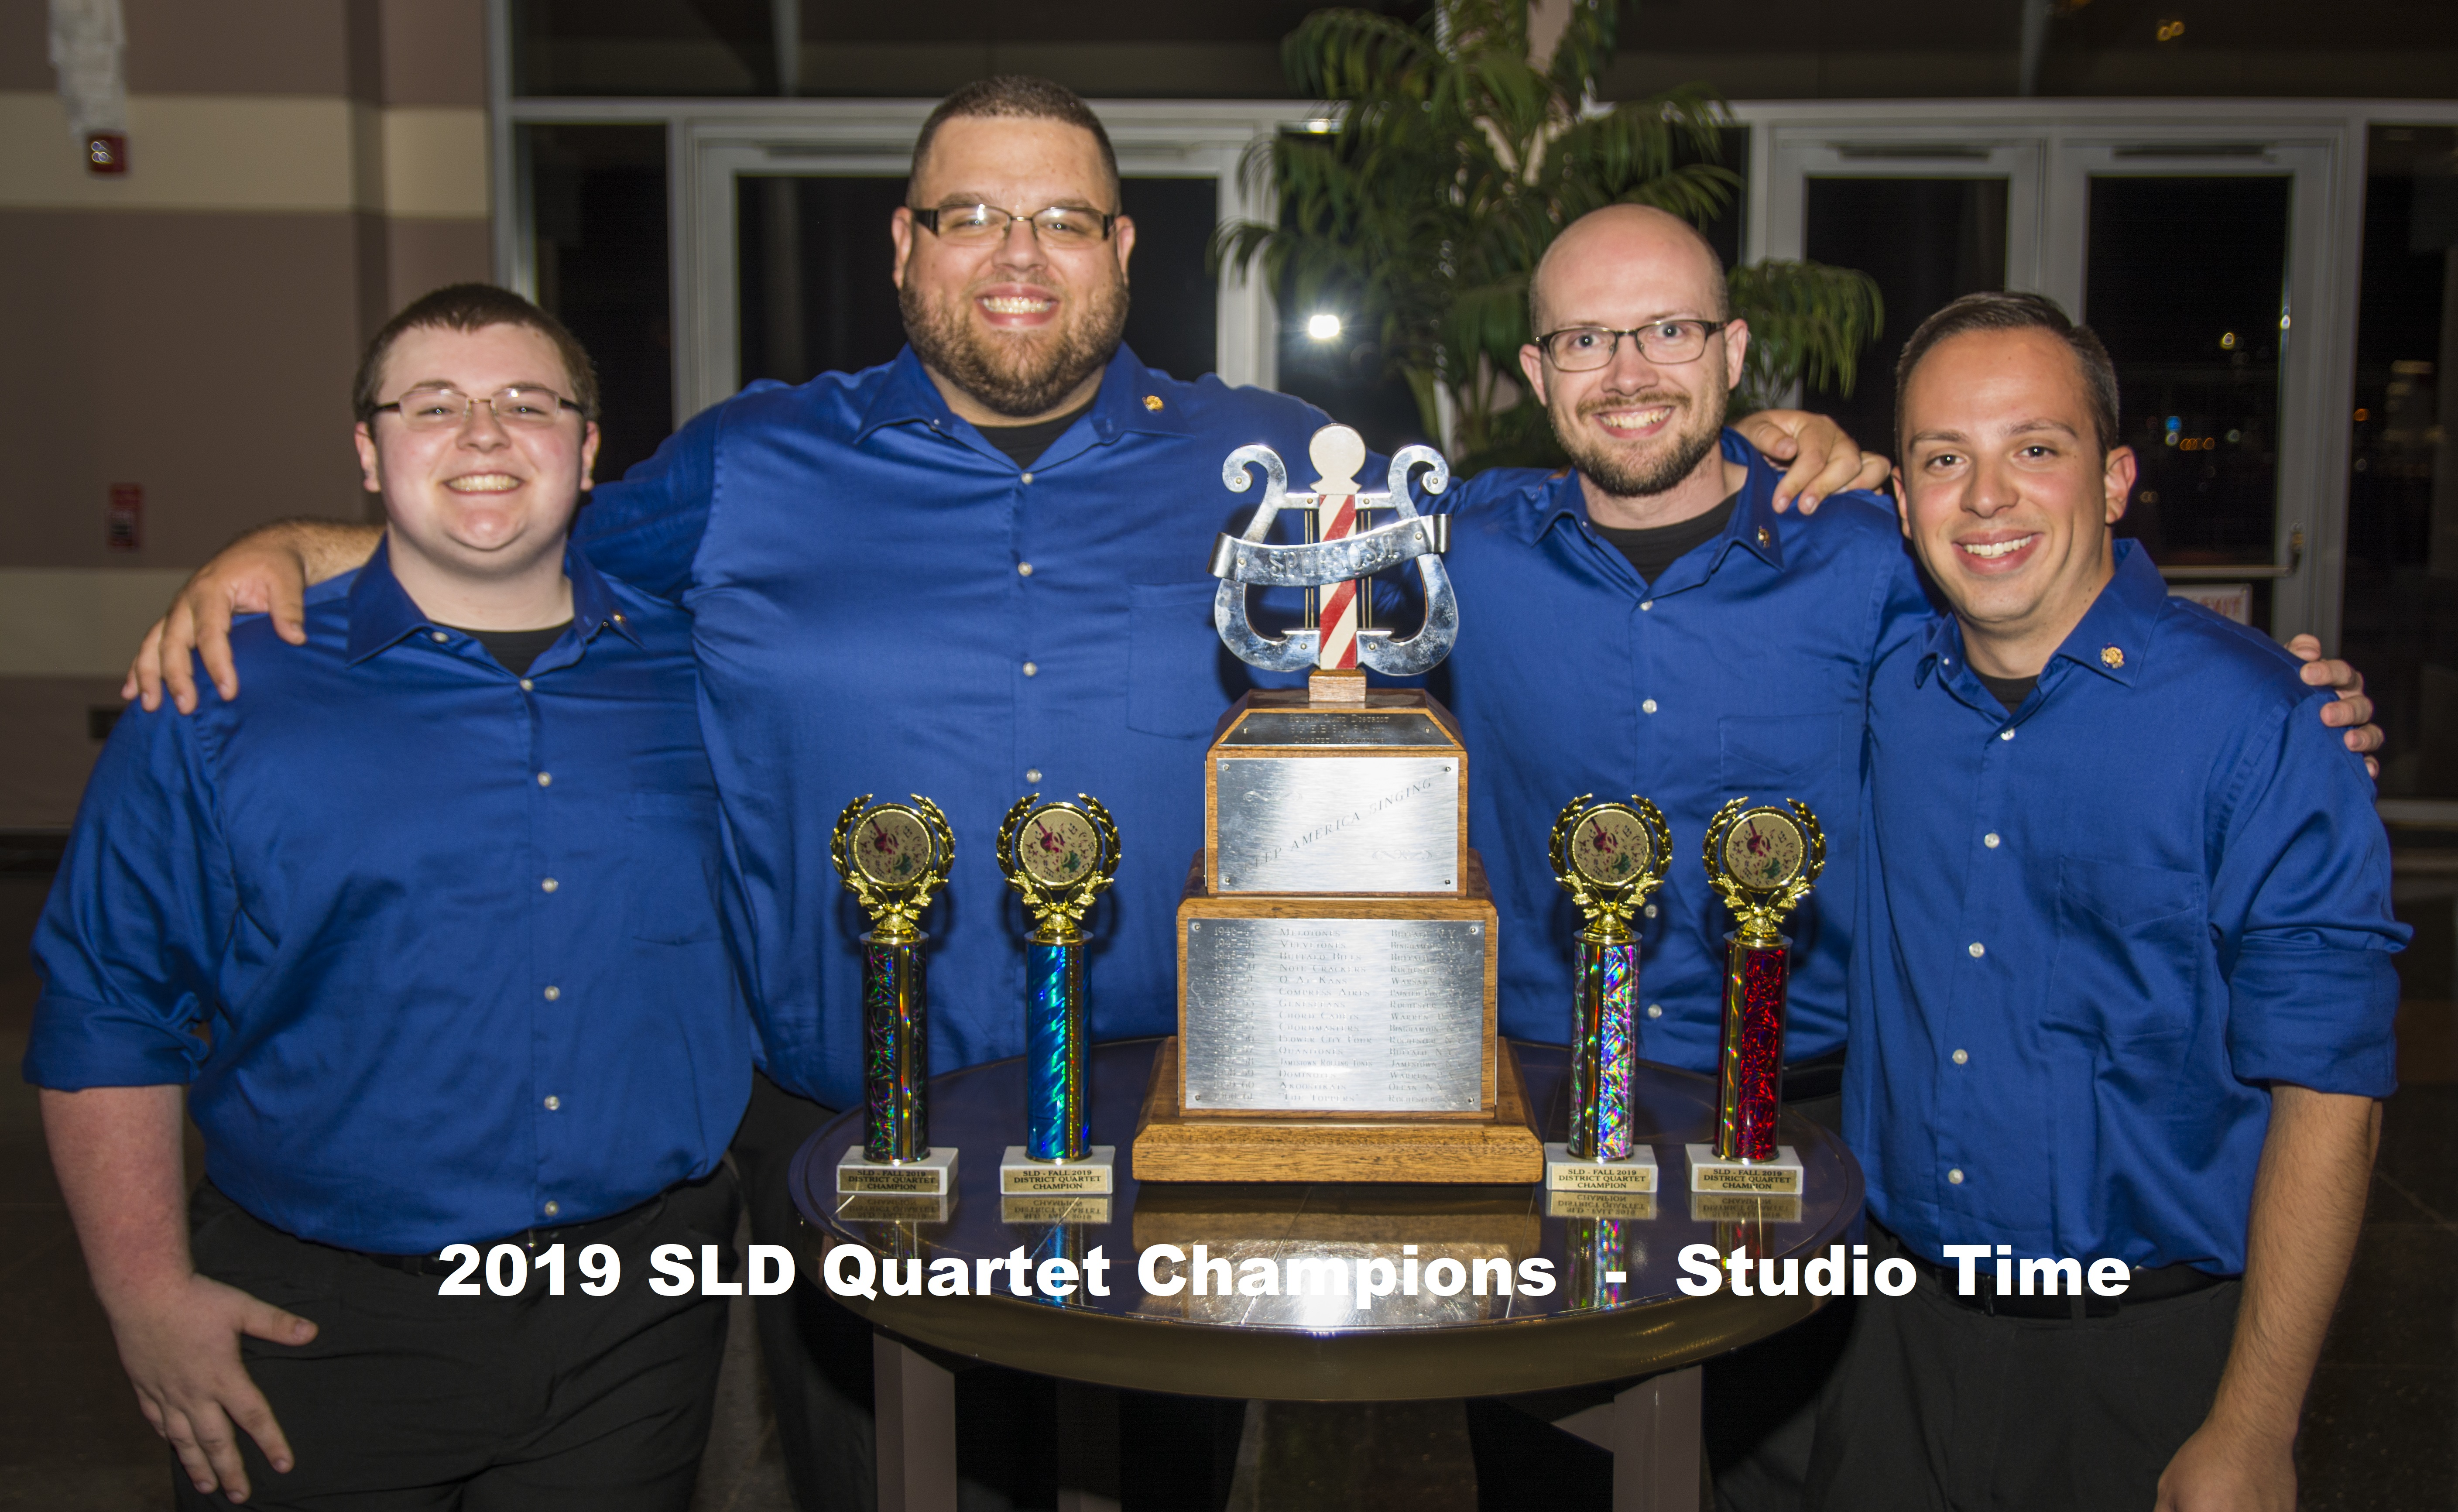 Studio Time District Champions